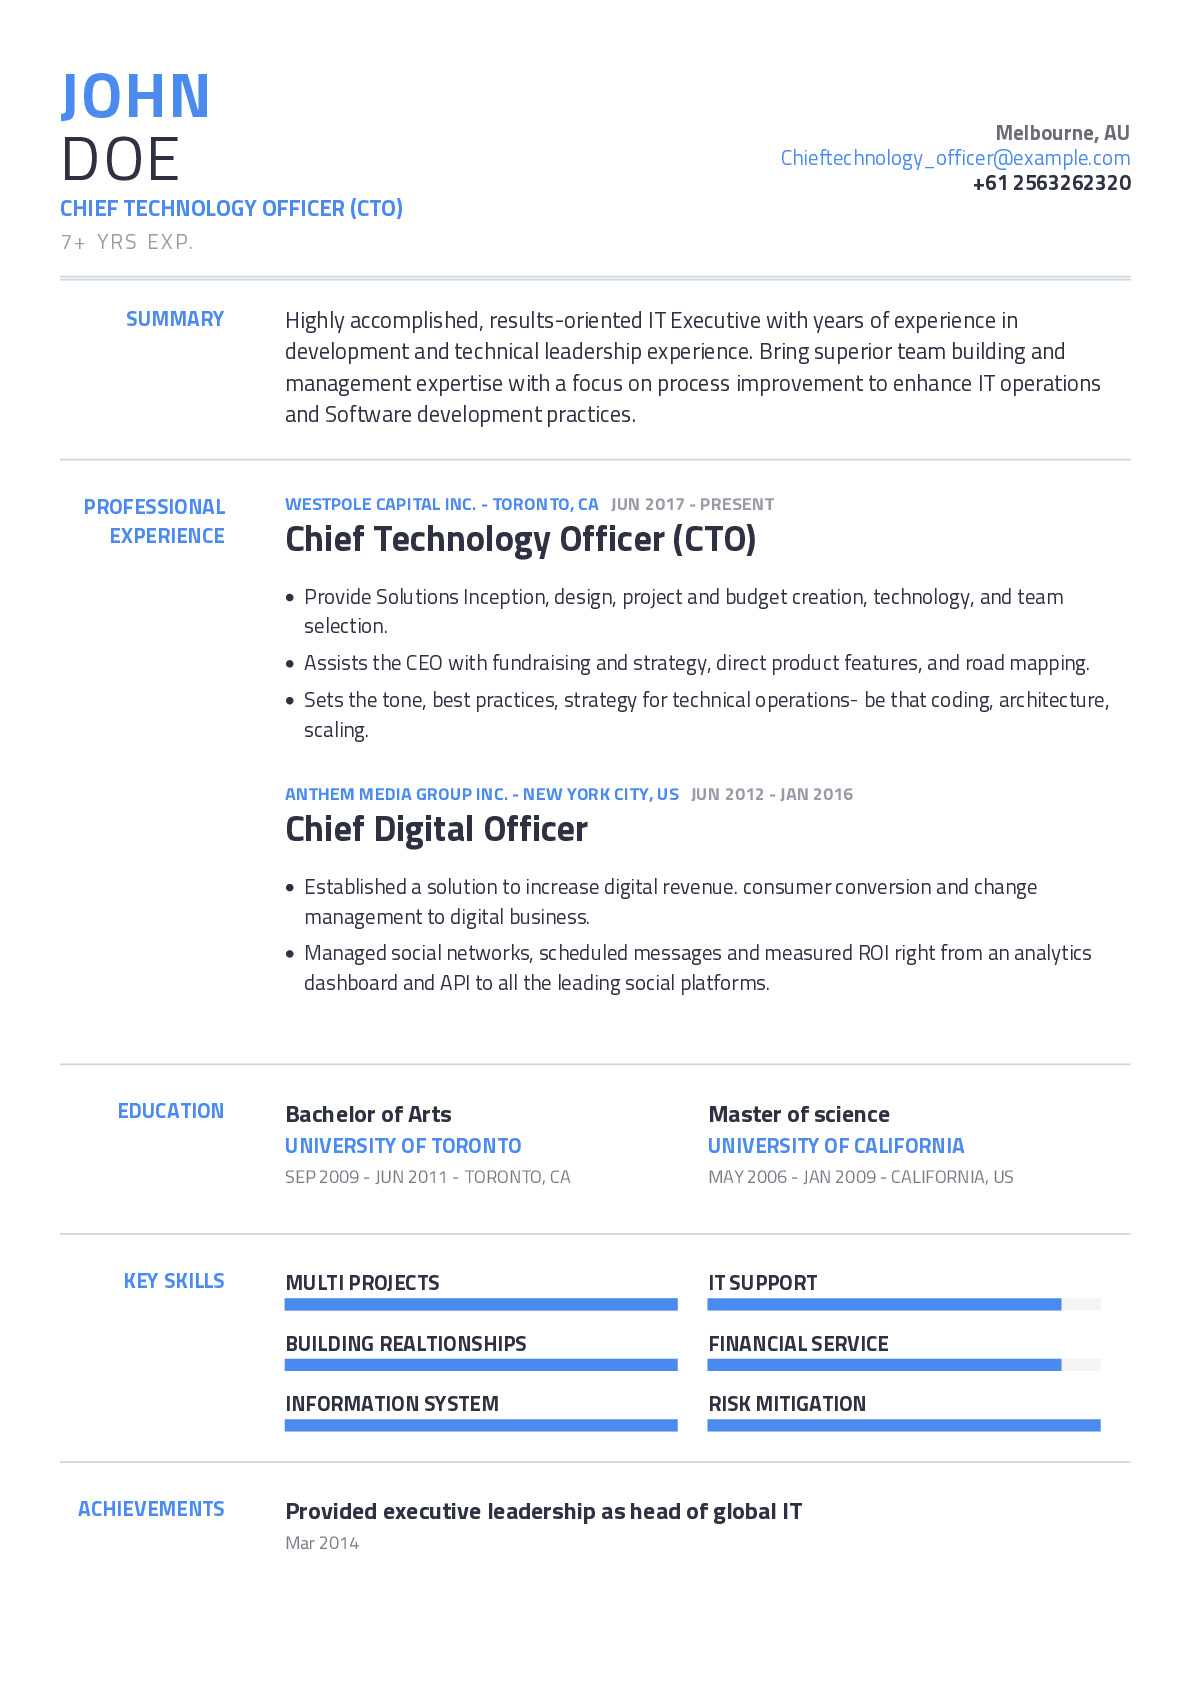 Chief Technology Officer (CTO) Resume Example